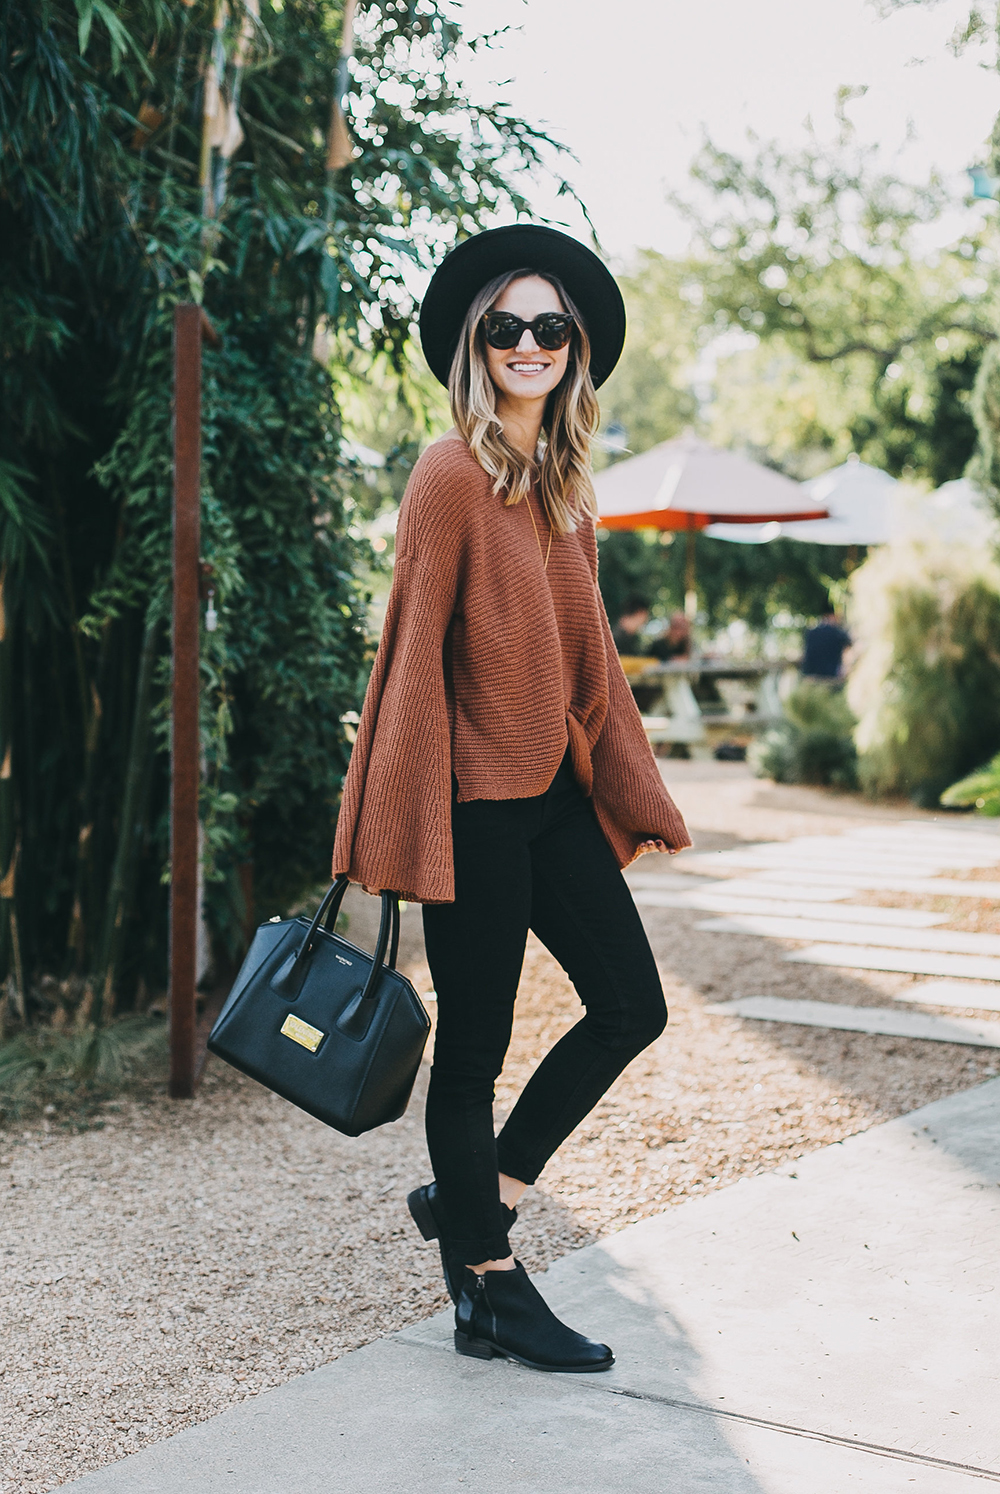 livvyland-blog-olivia-watson-austin-texas-fashion-lifestyle-blogger-fall-orange-slouchy-sweater-black-skinny-jeans-outfit-boho-fall-idea-7